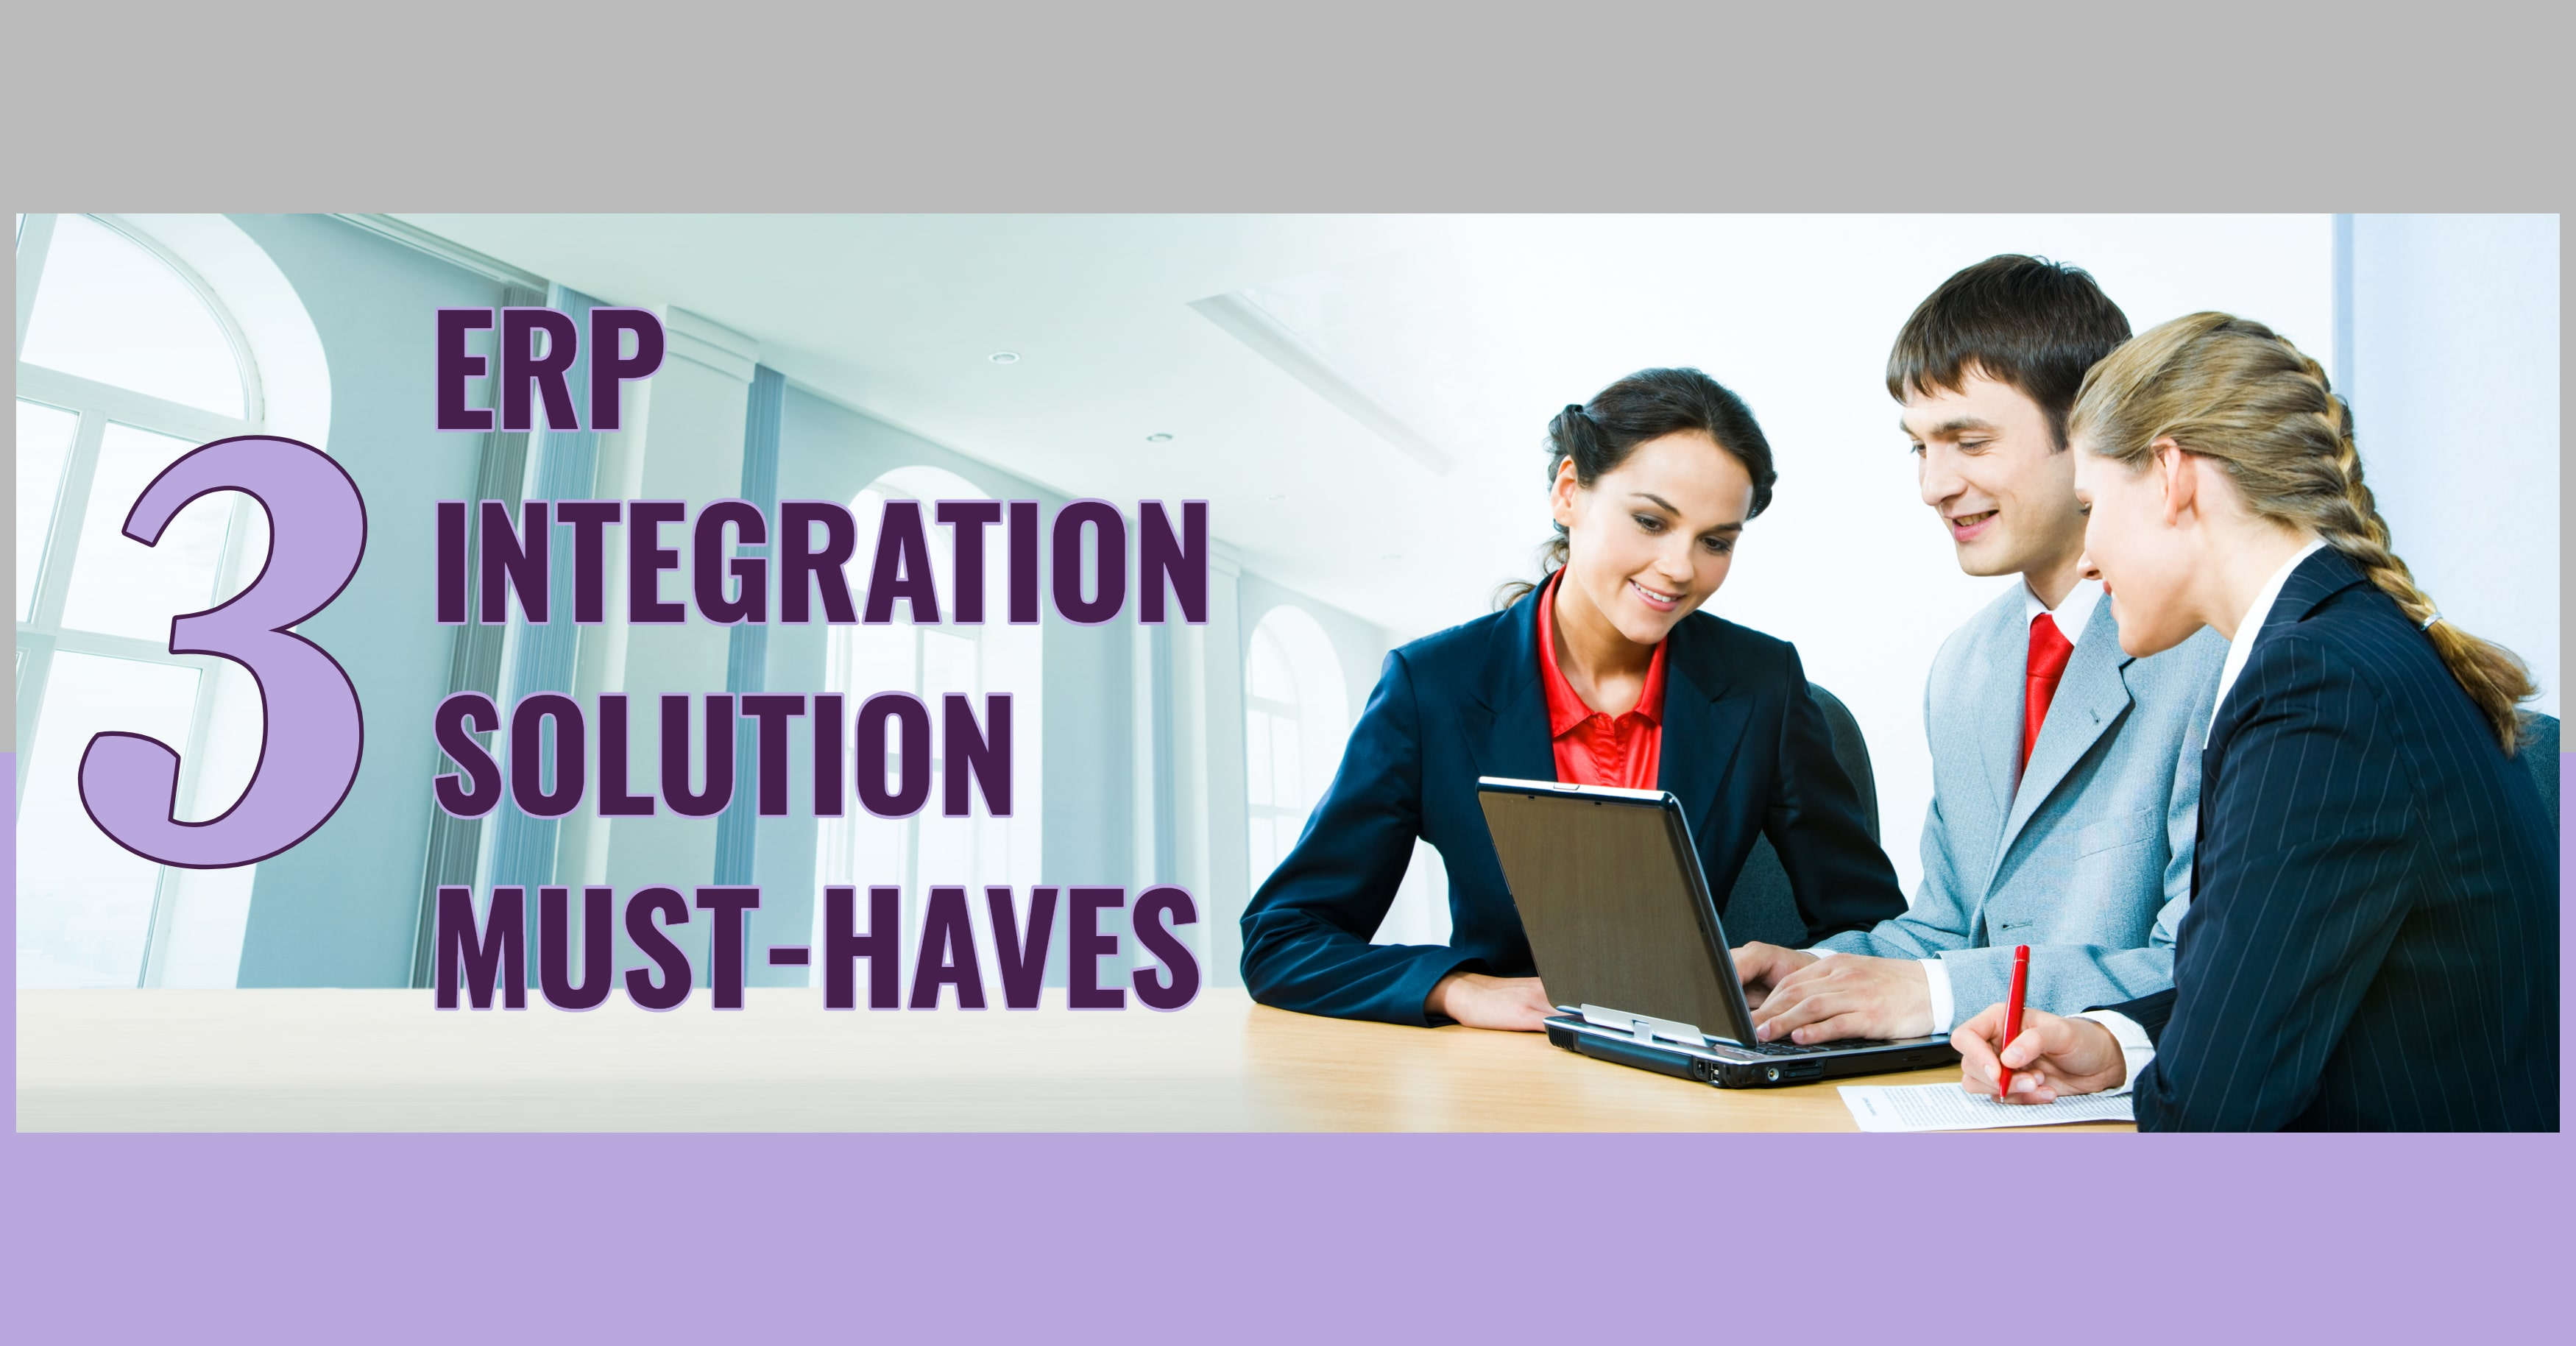 3 ERP Integration Solution Must-Haves